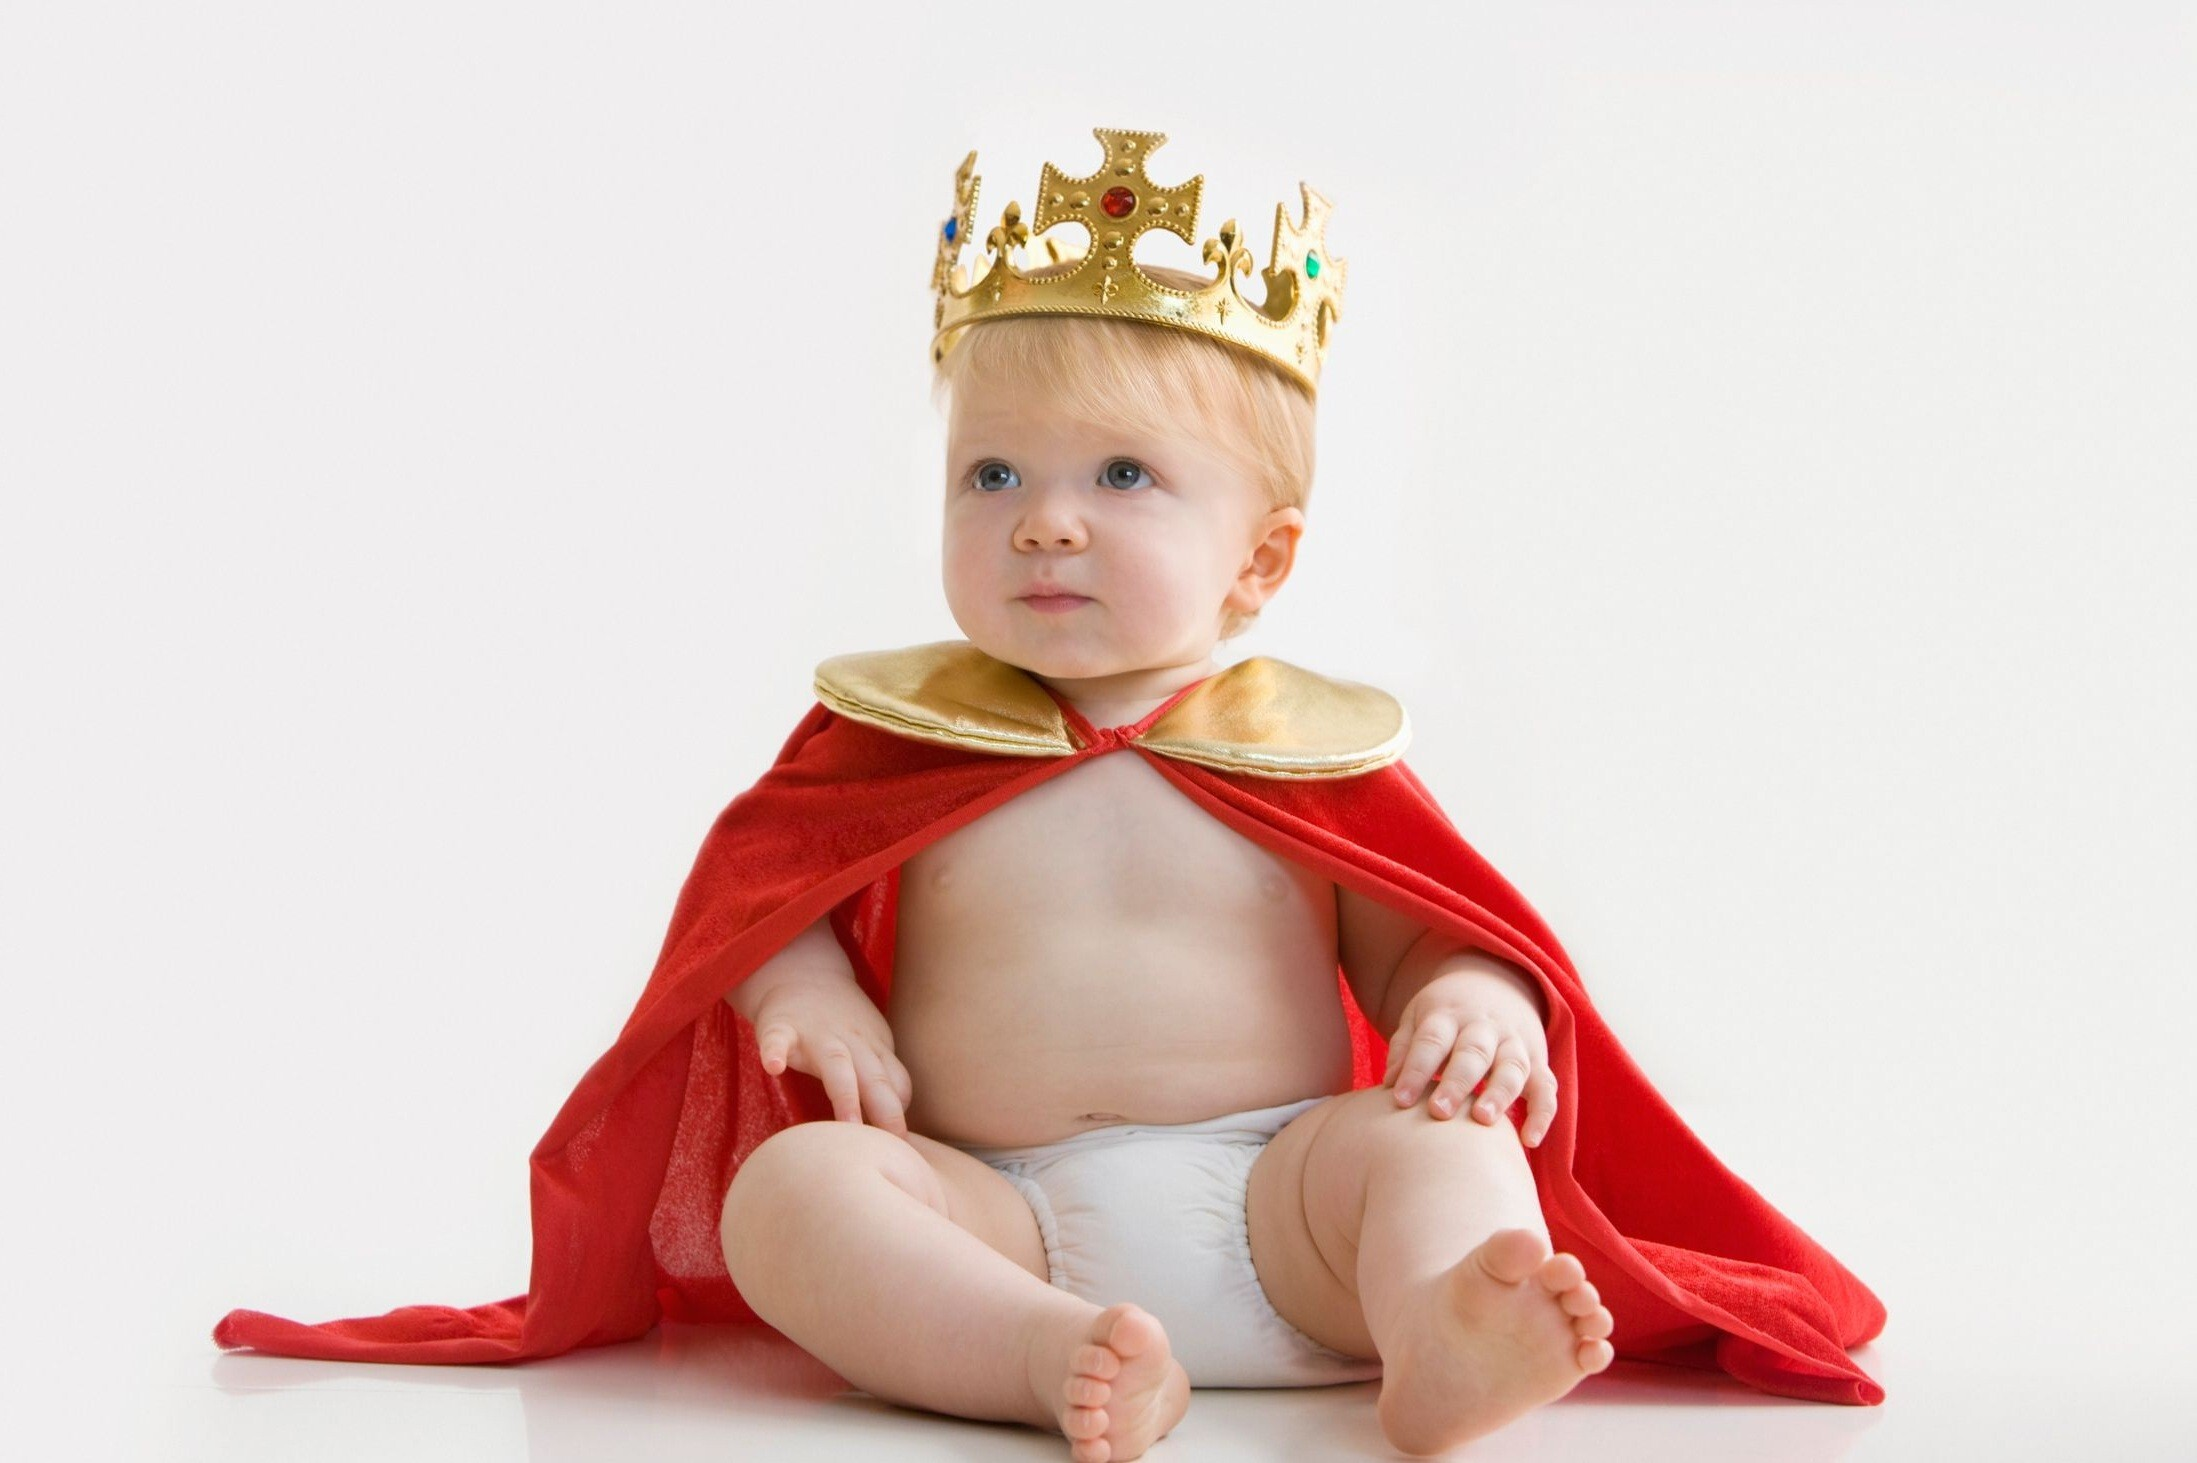 cute king baby wallpaper | hd wallpapers